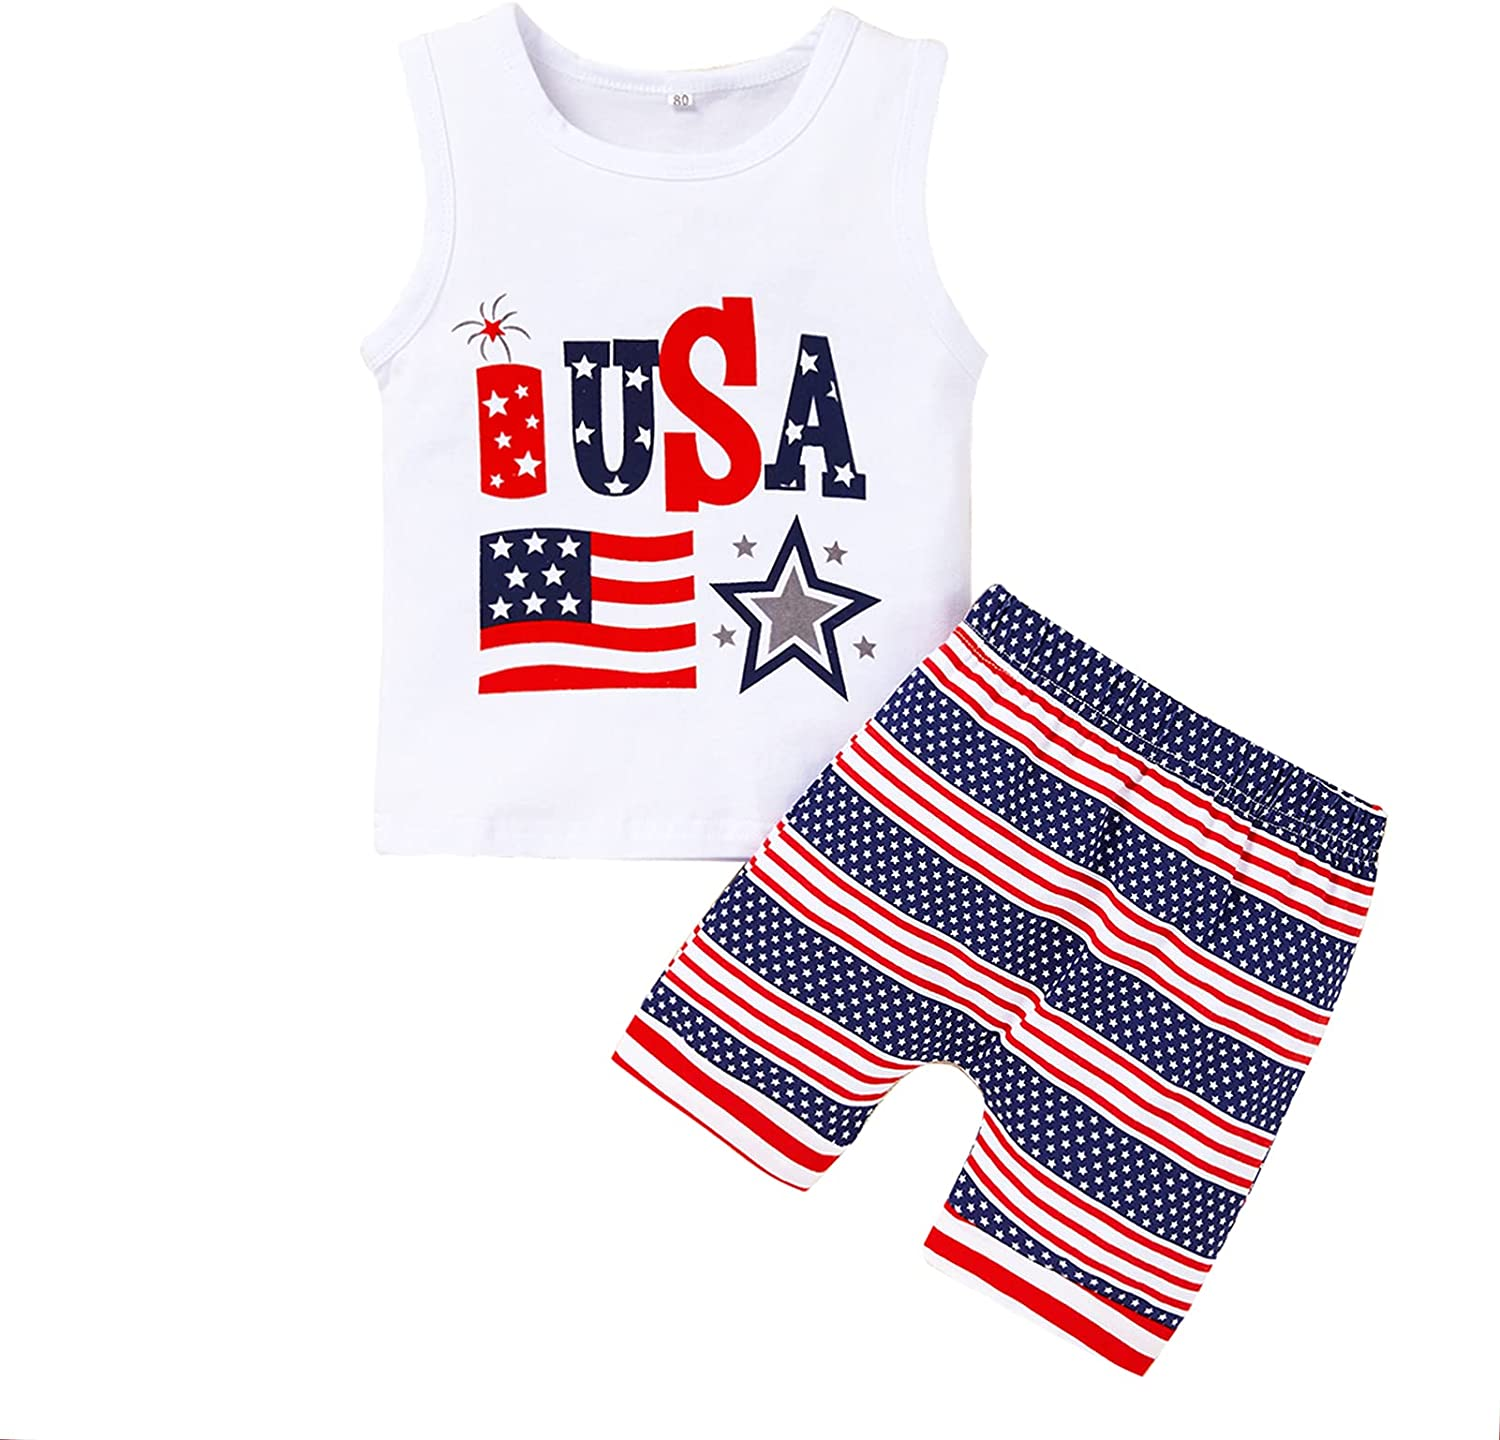 4th of July Outfits Baby Boy Shorts Set USA Letter Print Vest Top + American Flag Shorts Independence Day Clothes Set